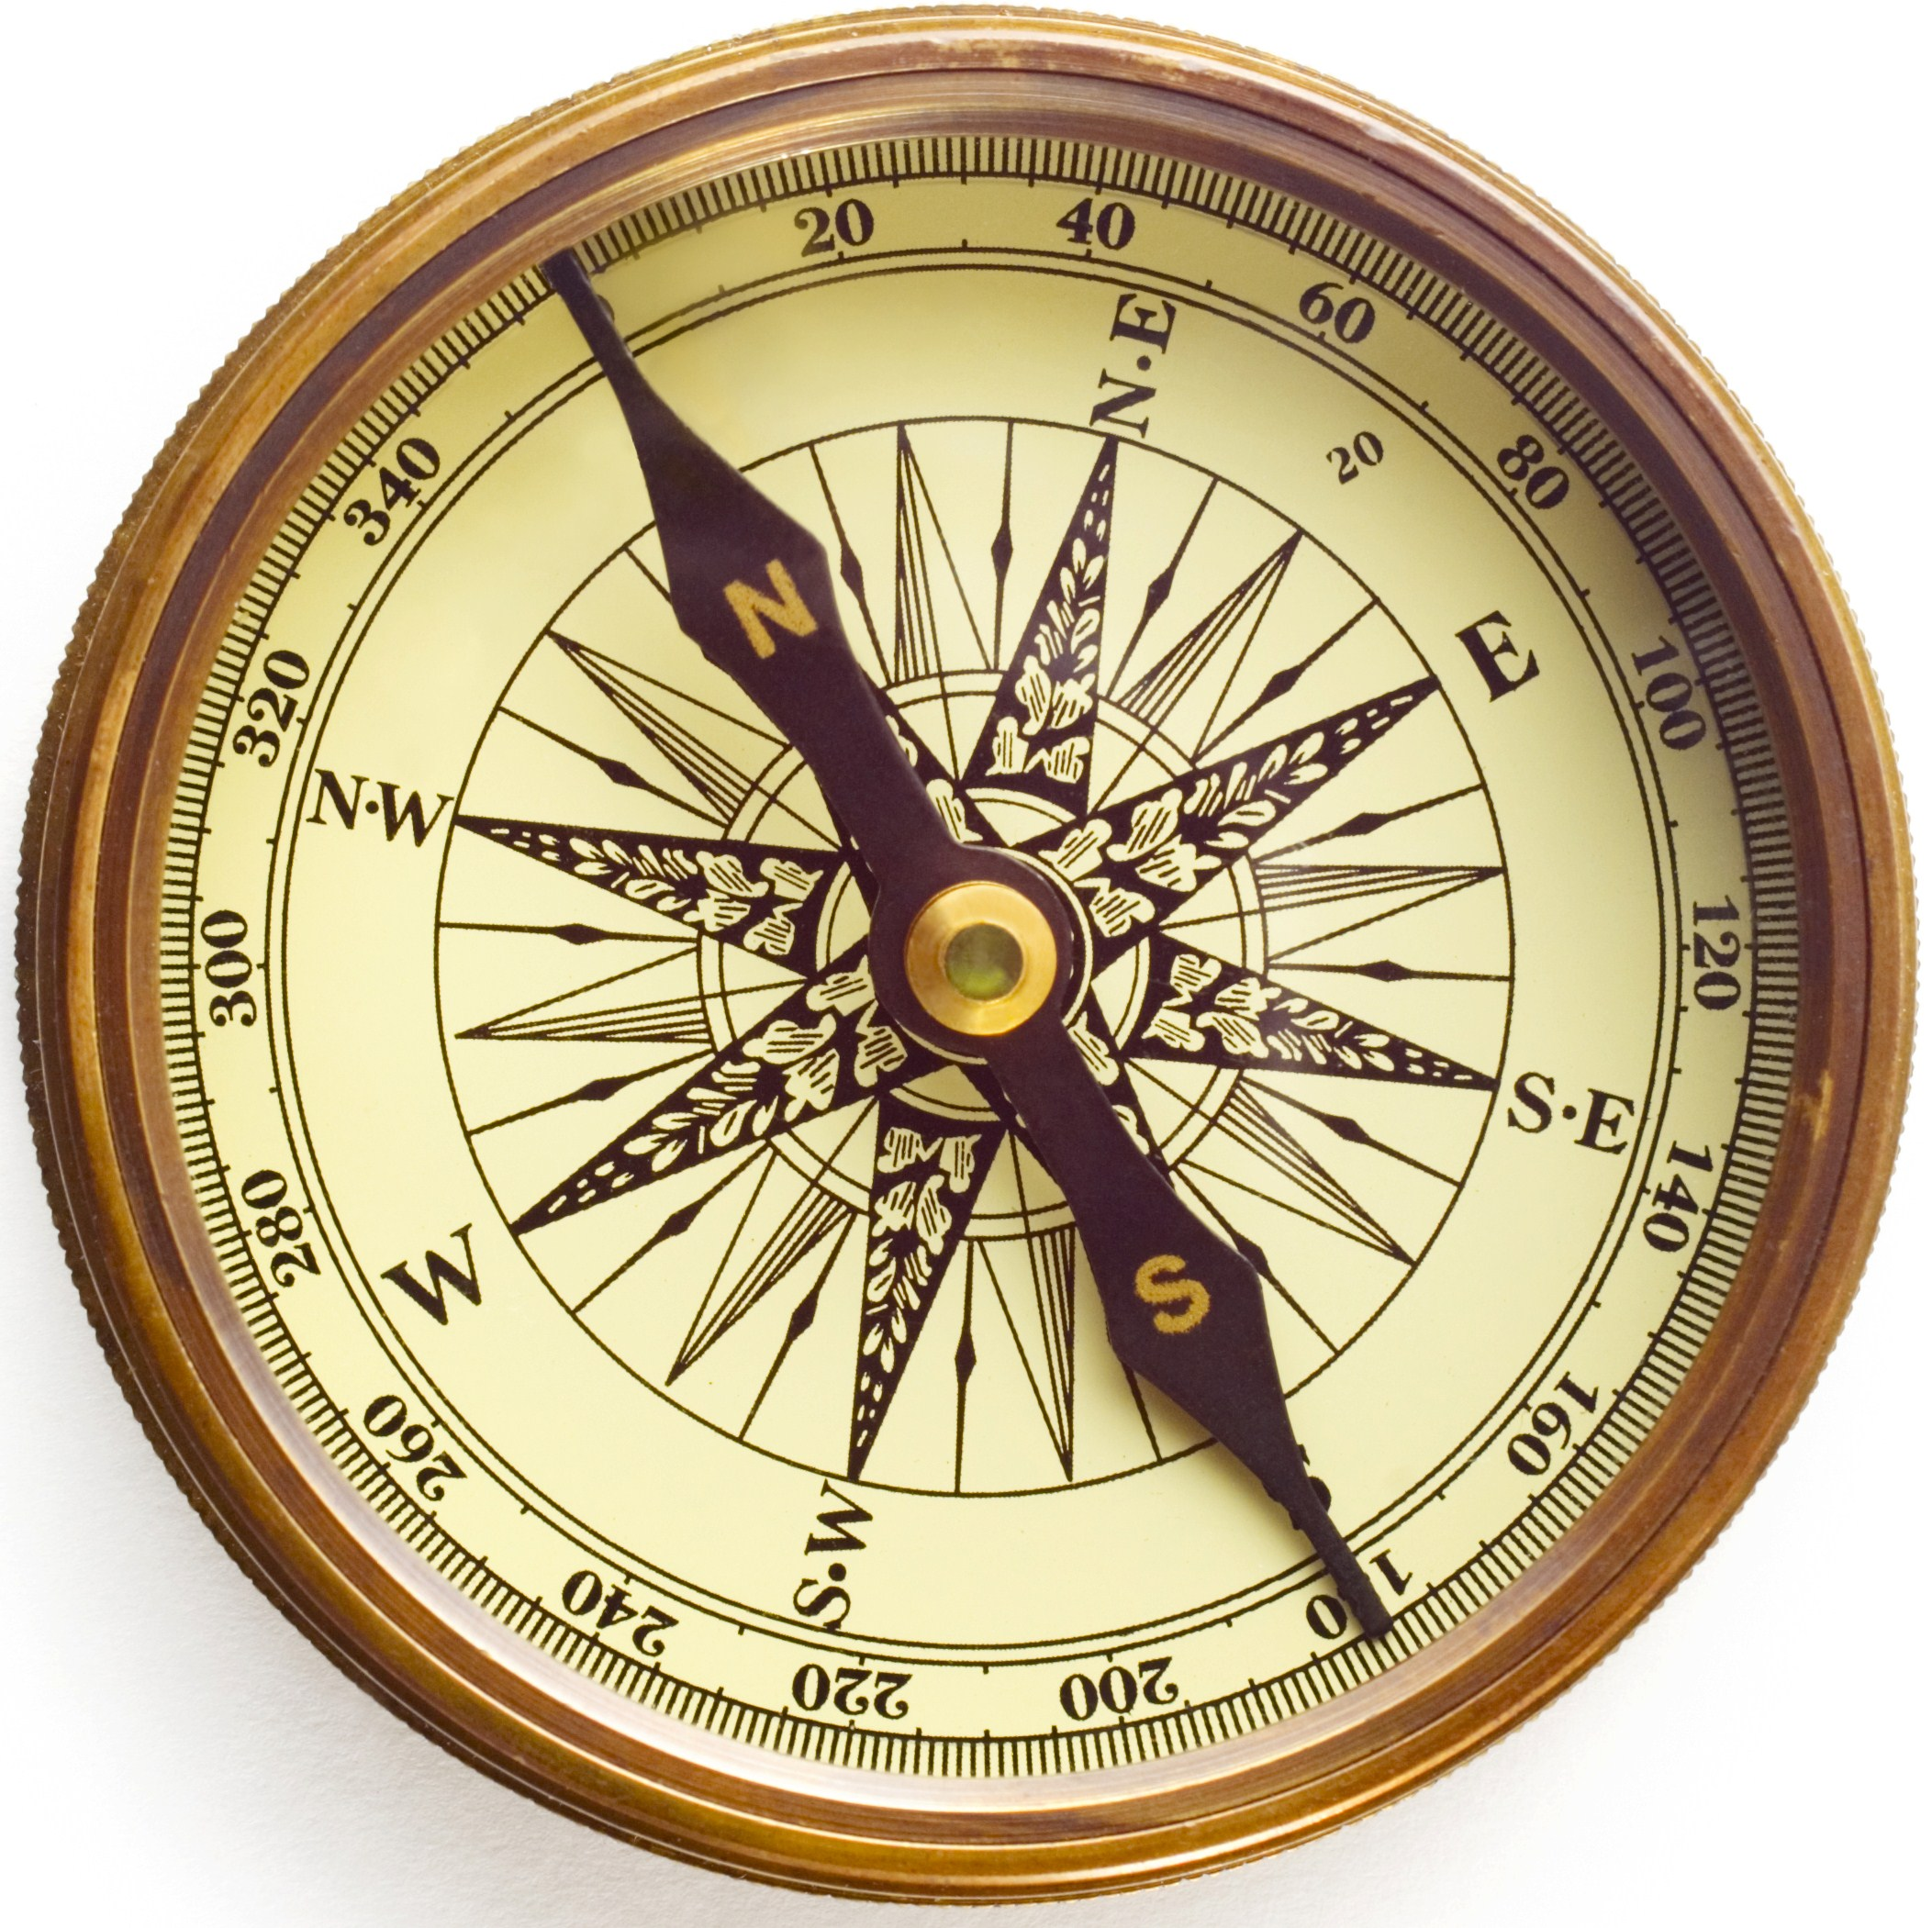 Hard Goods Compass Buying Agency in Delhi